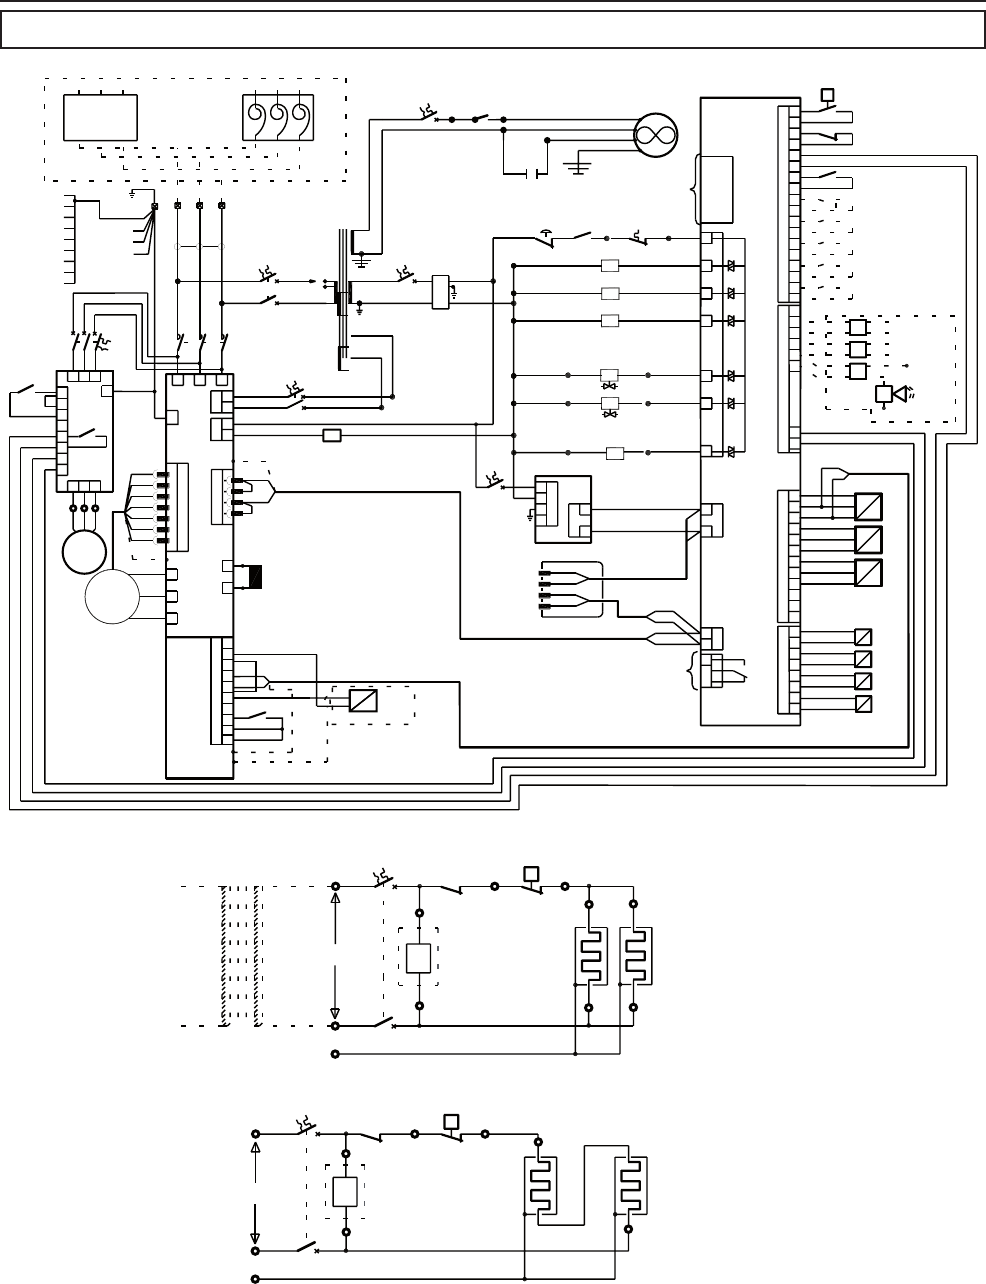 09348767 19eb 4440 9350 a94ca31df7f5 bg34 page 52 of ingersoll rand air compressor irn50 200h cc user guide husky air compressor wiring diagram at alyssarenee.co